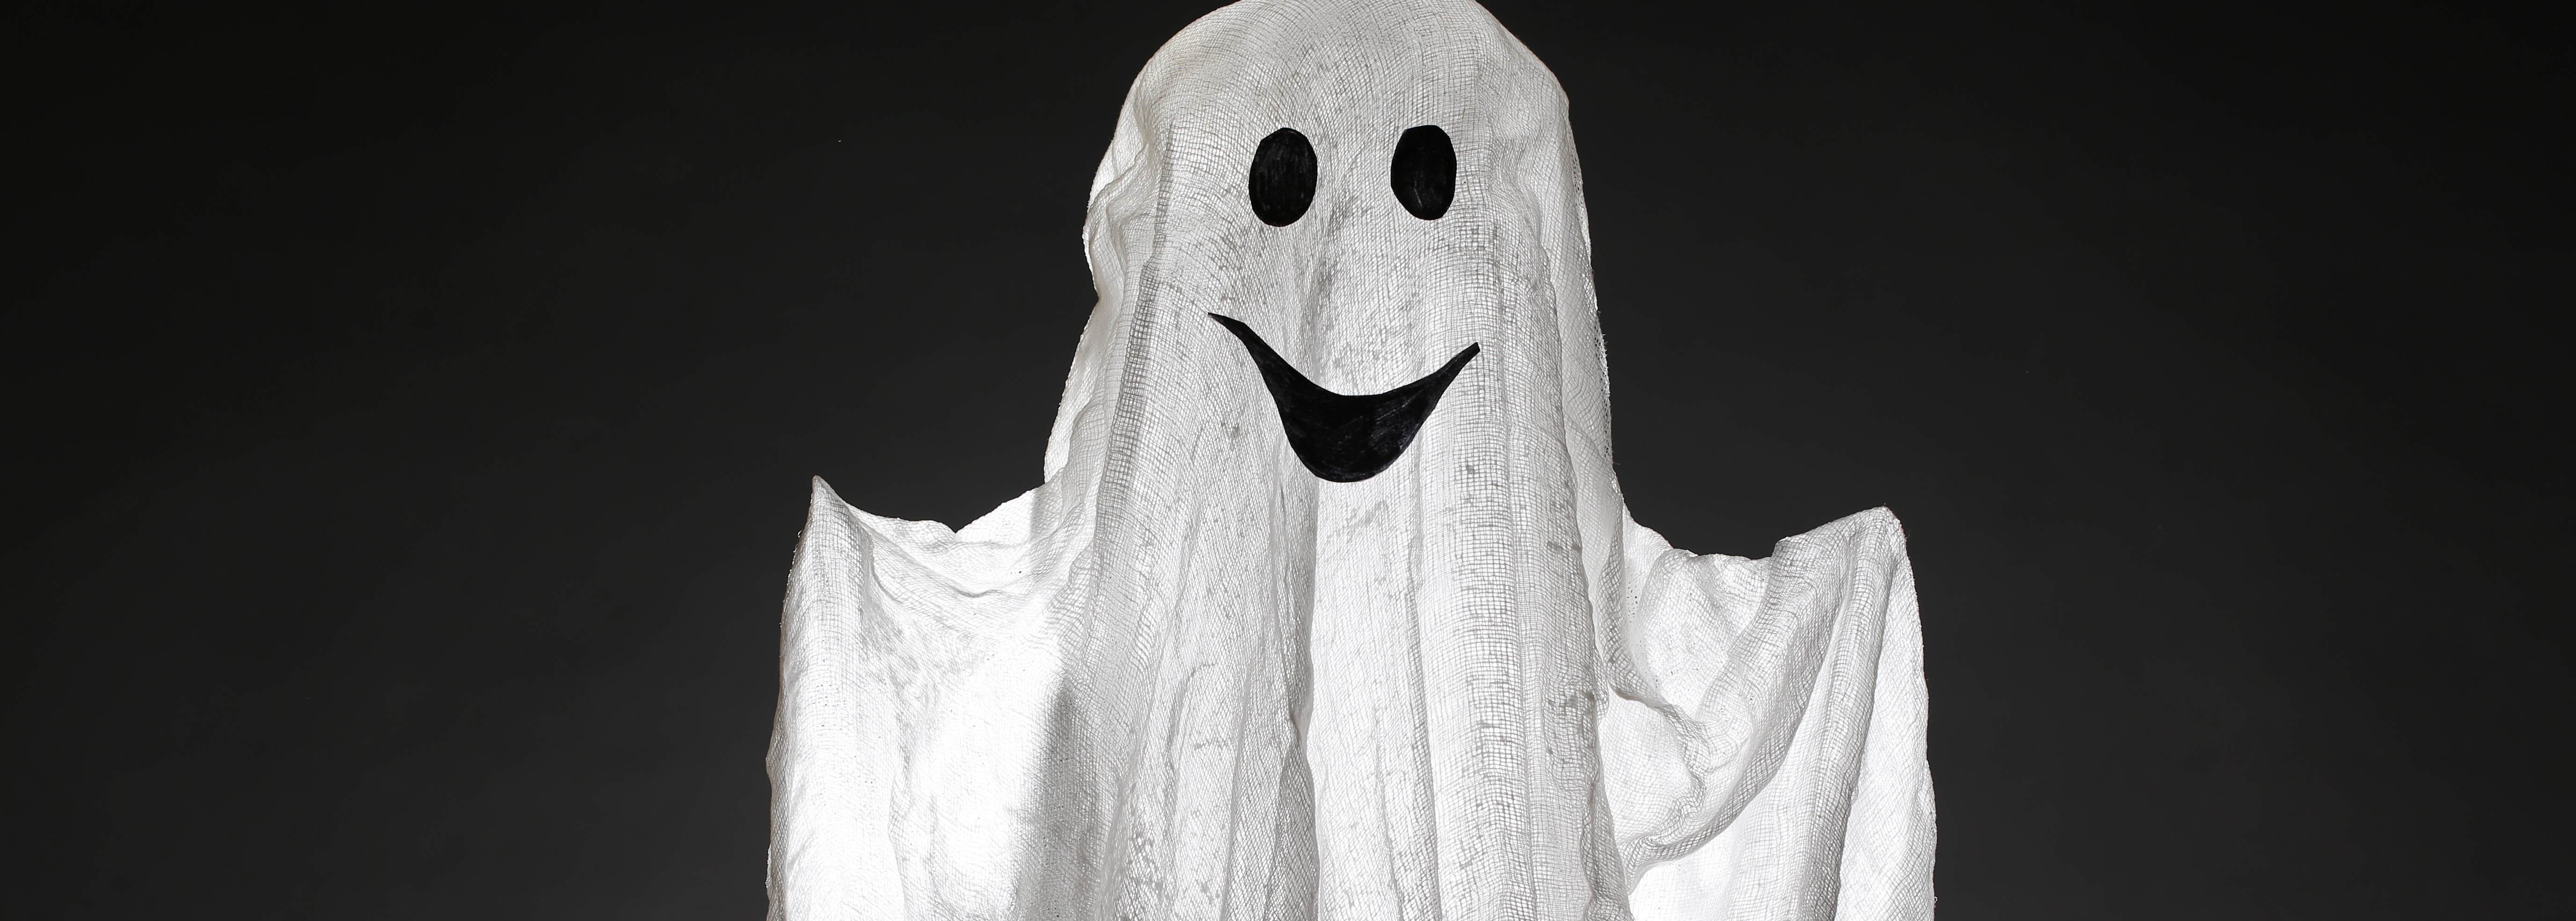 Ghost Reveals What's Next For the Open-Source Blogging Platform